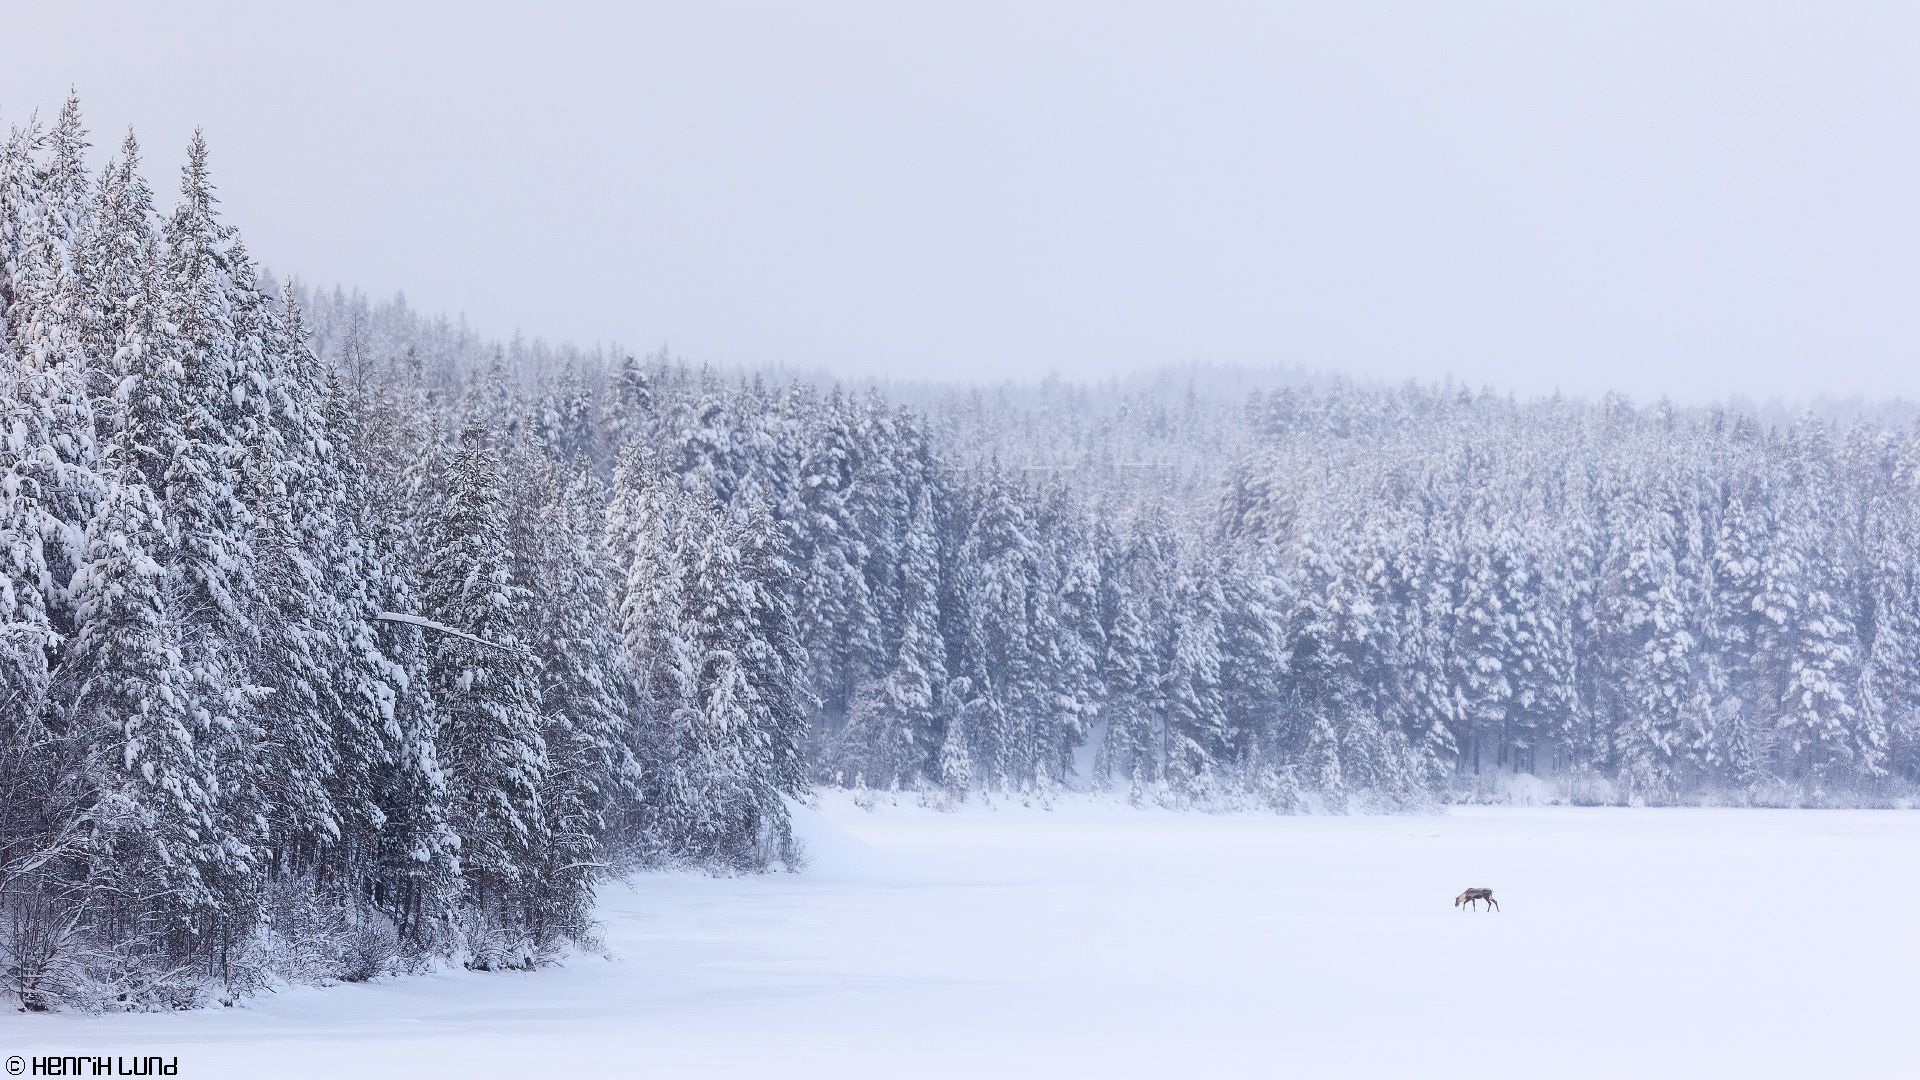 Lonely reindeer on the ice of Skellefteälven in Renström. Sweden. January 2015.